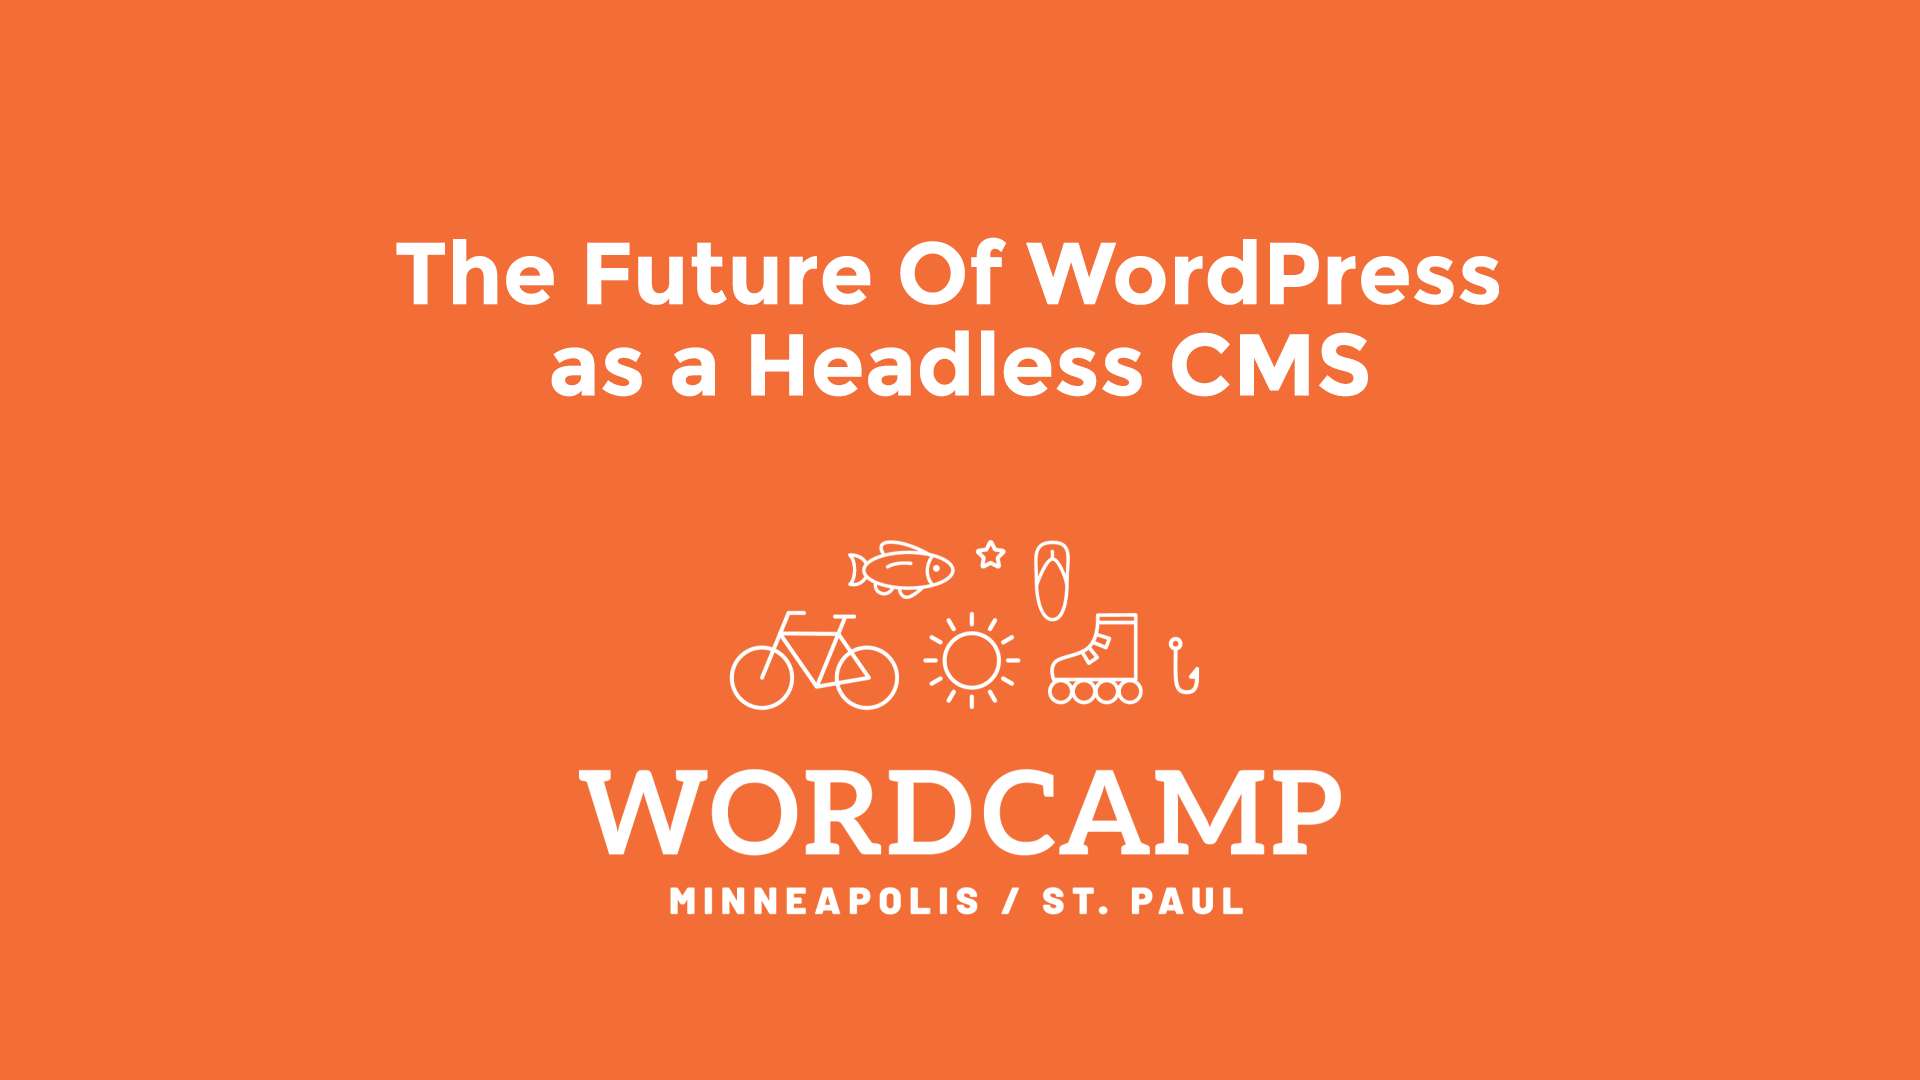 The Future Of WordPress as a Headless CMS Featured Image